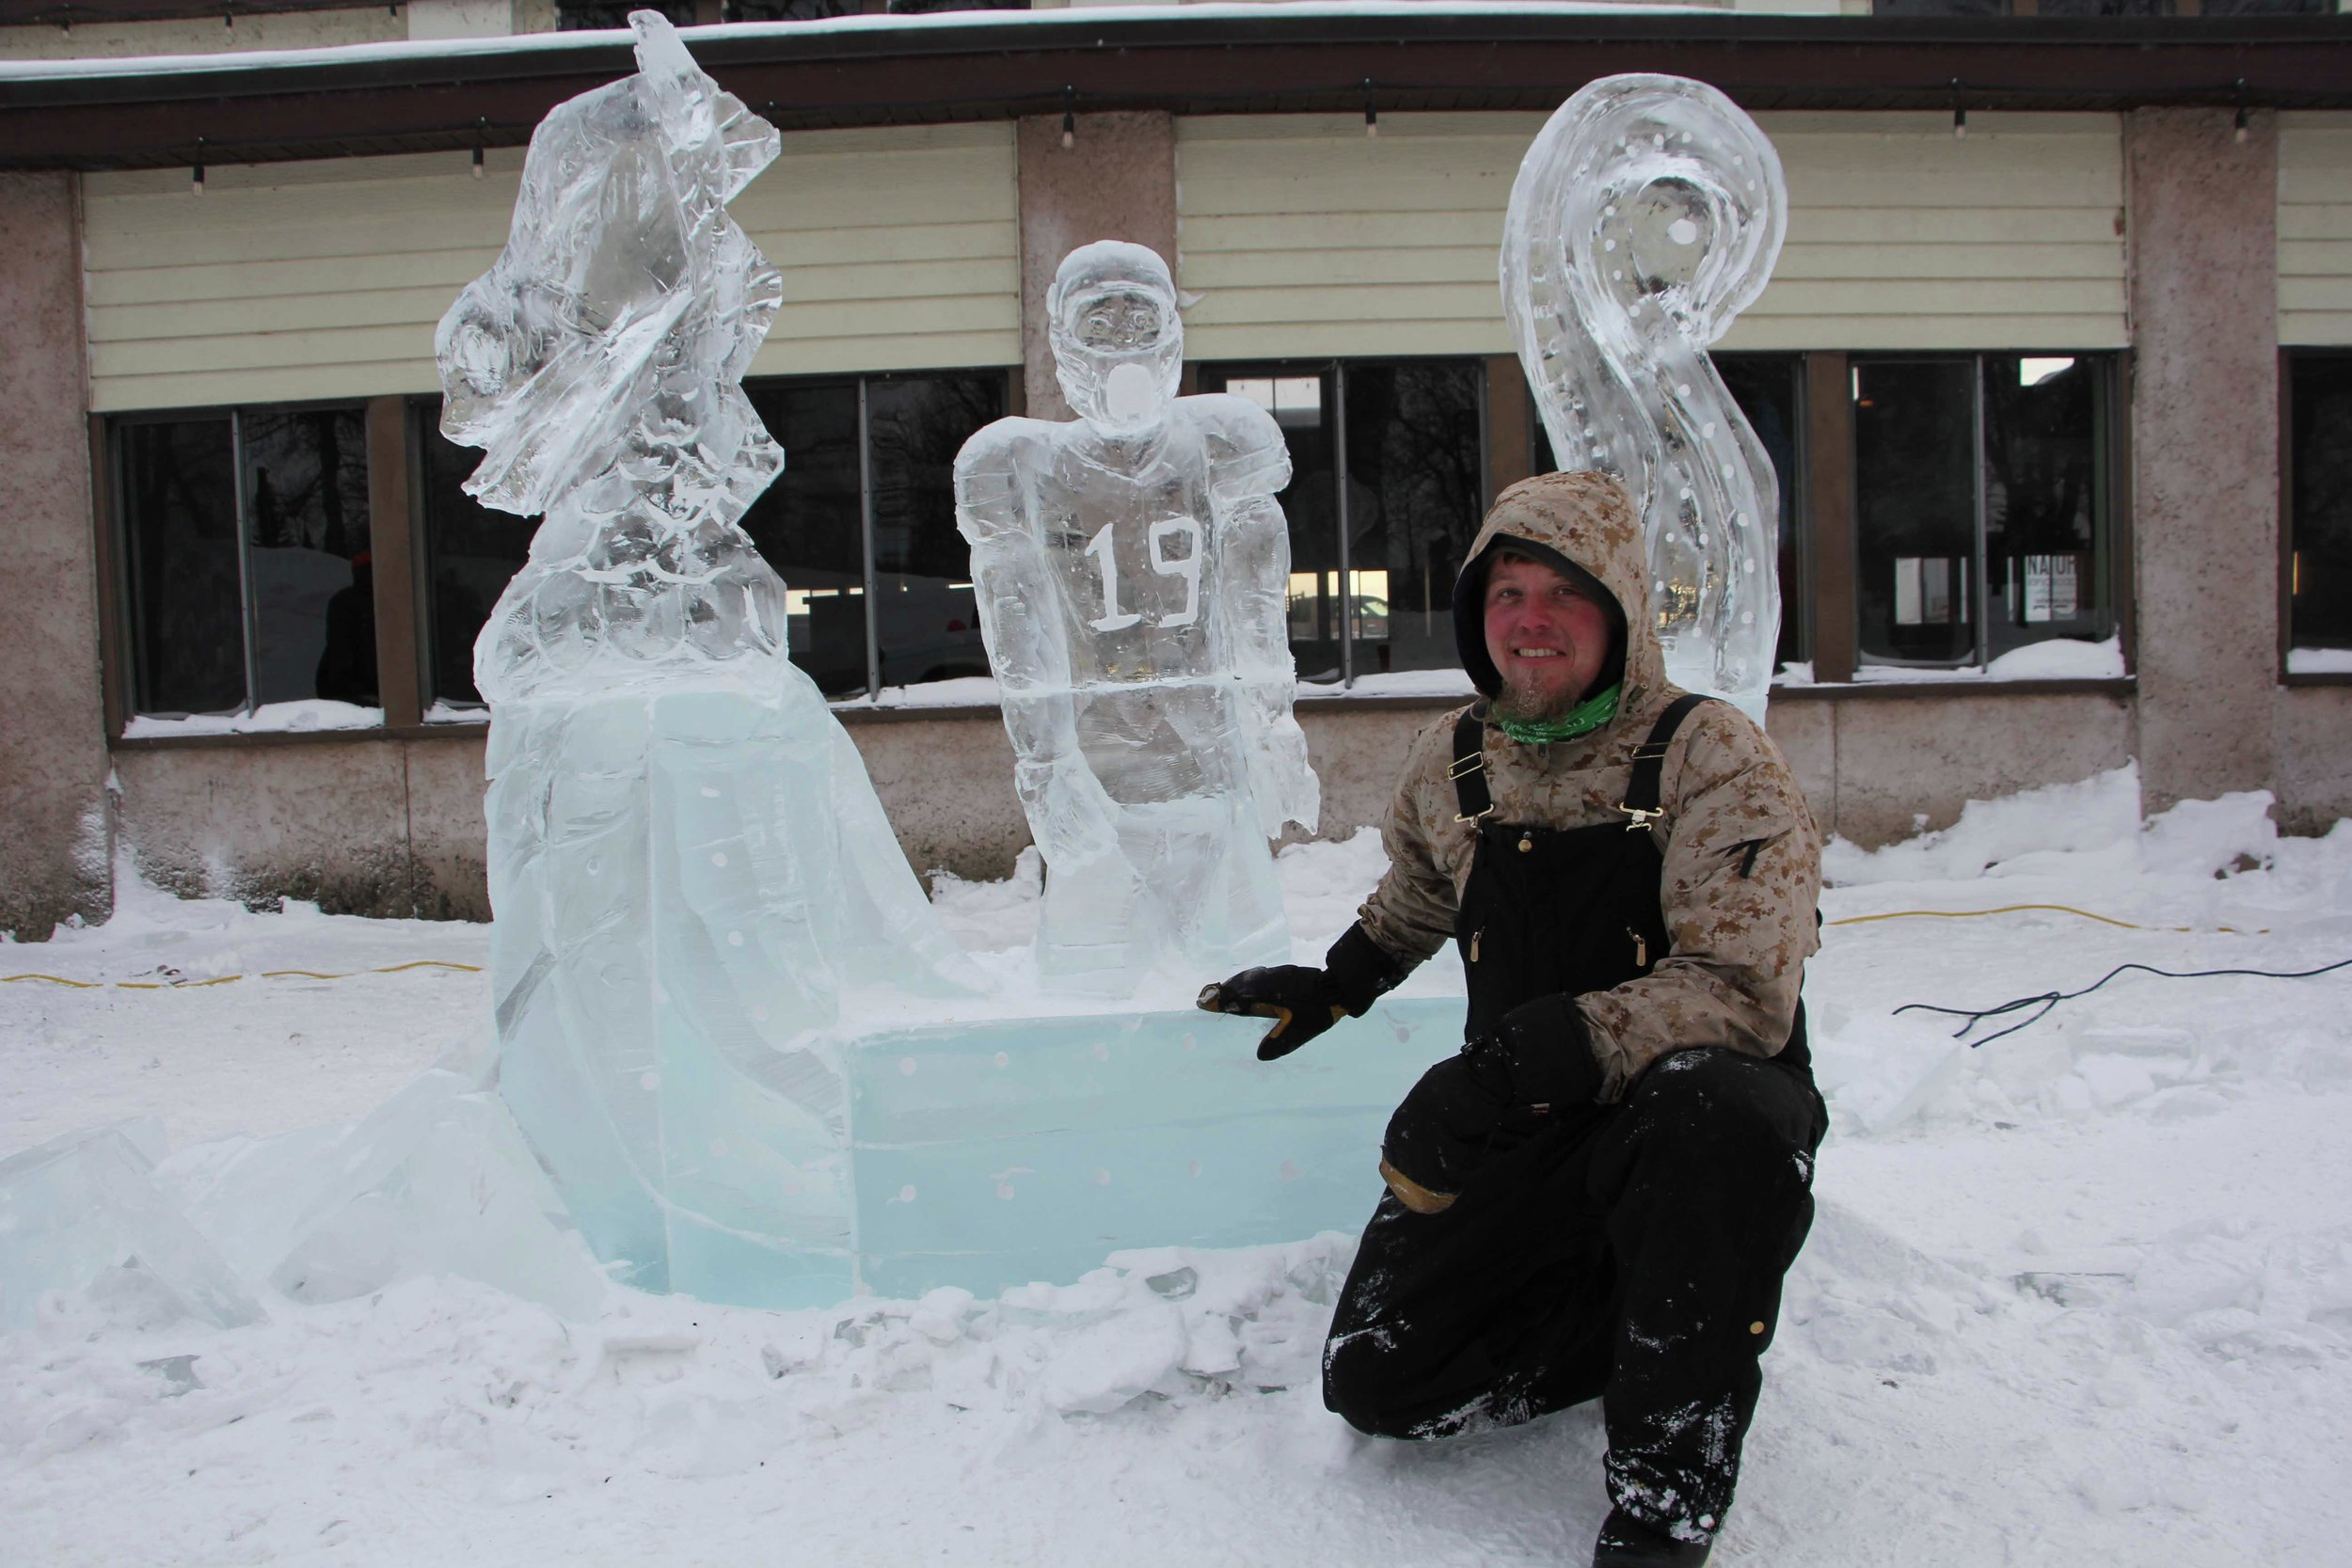 """Though he didn't take one of the top three spots in this weekend's ice carving competition, """"Chainsaw Dave"""" Belling, Moorhead, was pretty proud of his """"Home Voyage"""" sculpture, which featured hometown hero Adam Thielen. (Vicki Gerdes / Tribune)"""